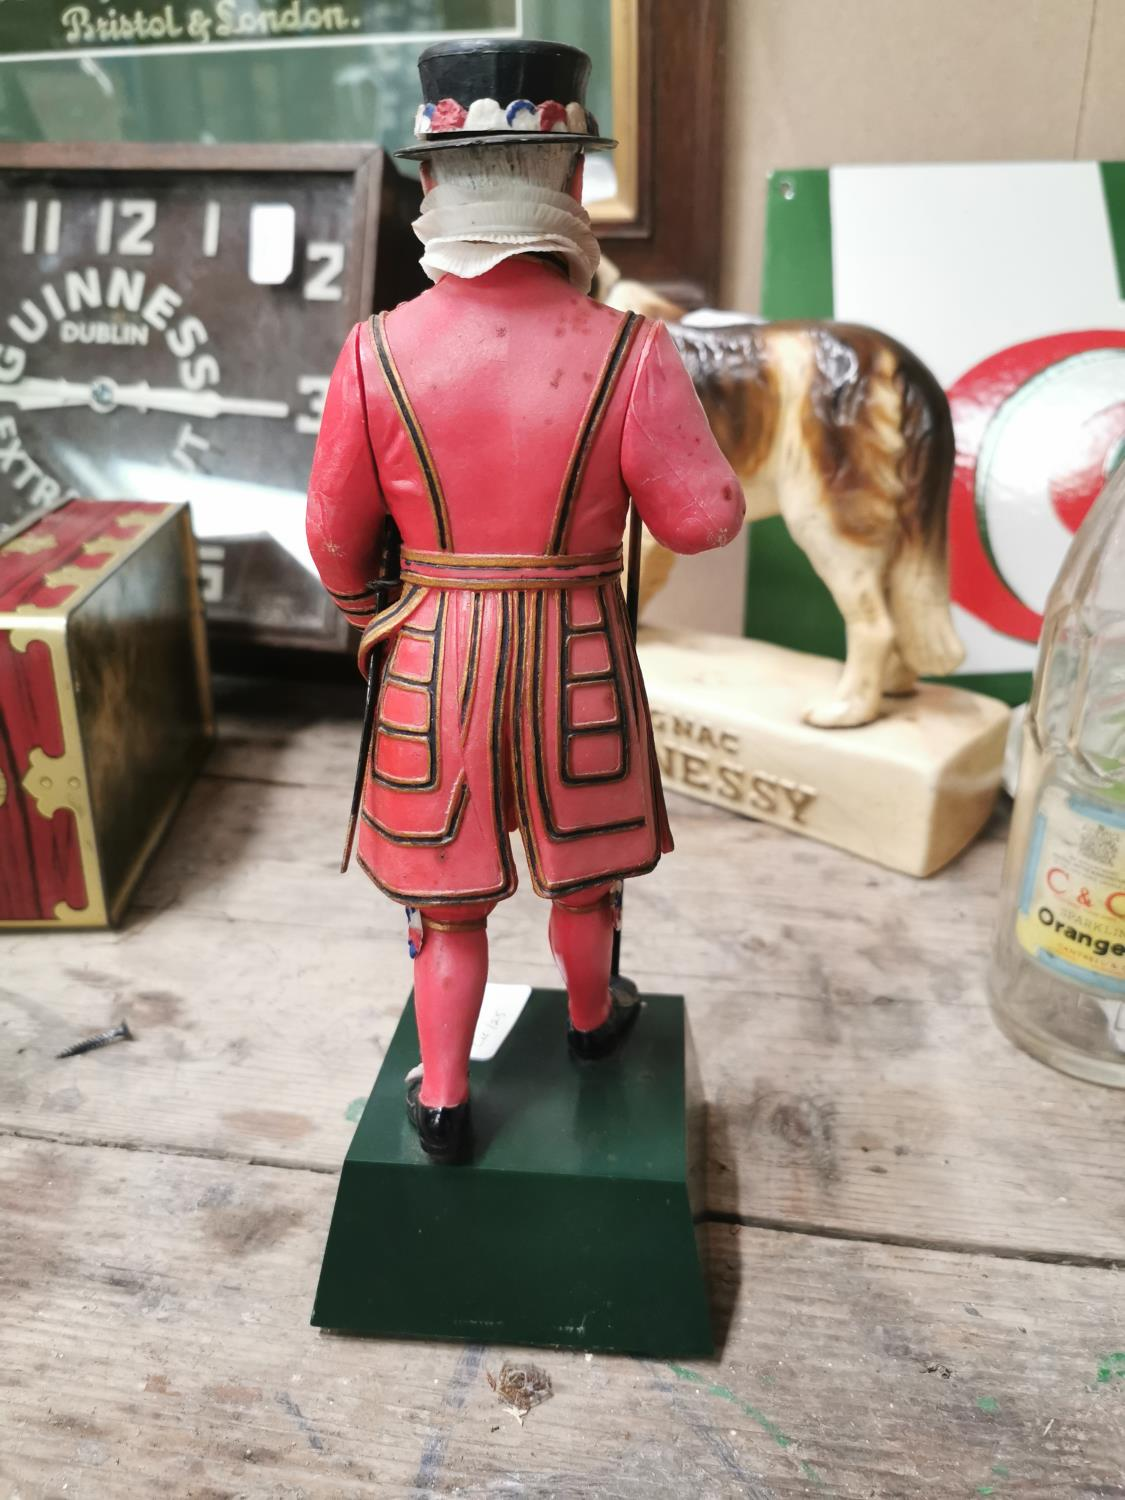 Beefeater London Dry Gin advertising figure. - Image 2 of 2